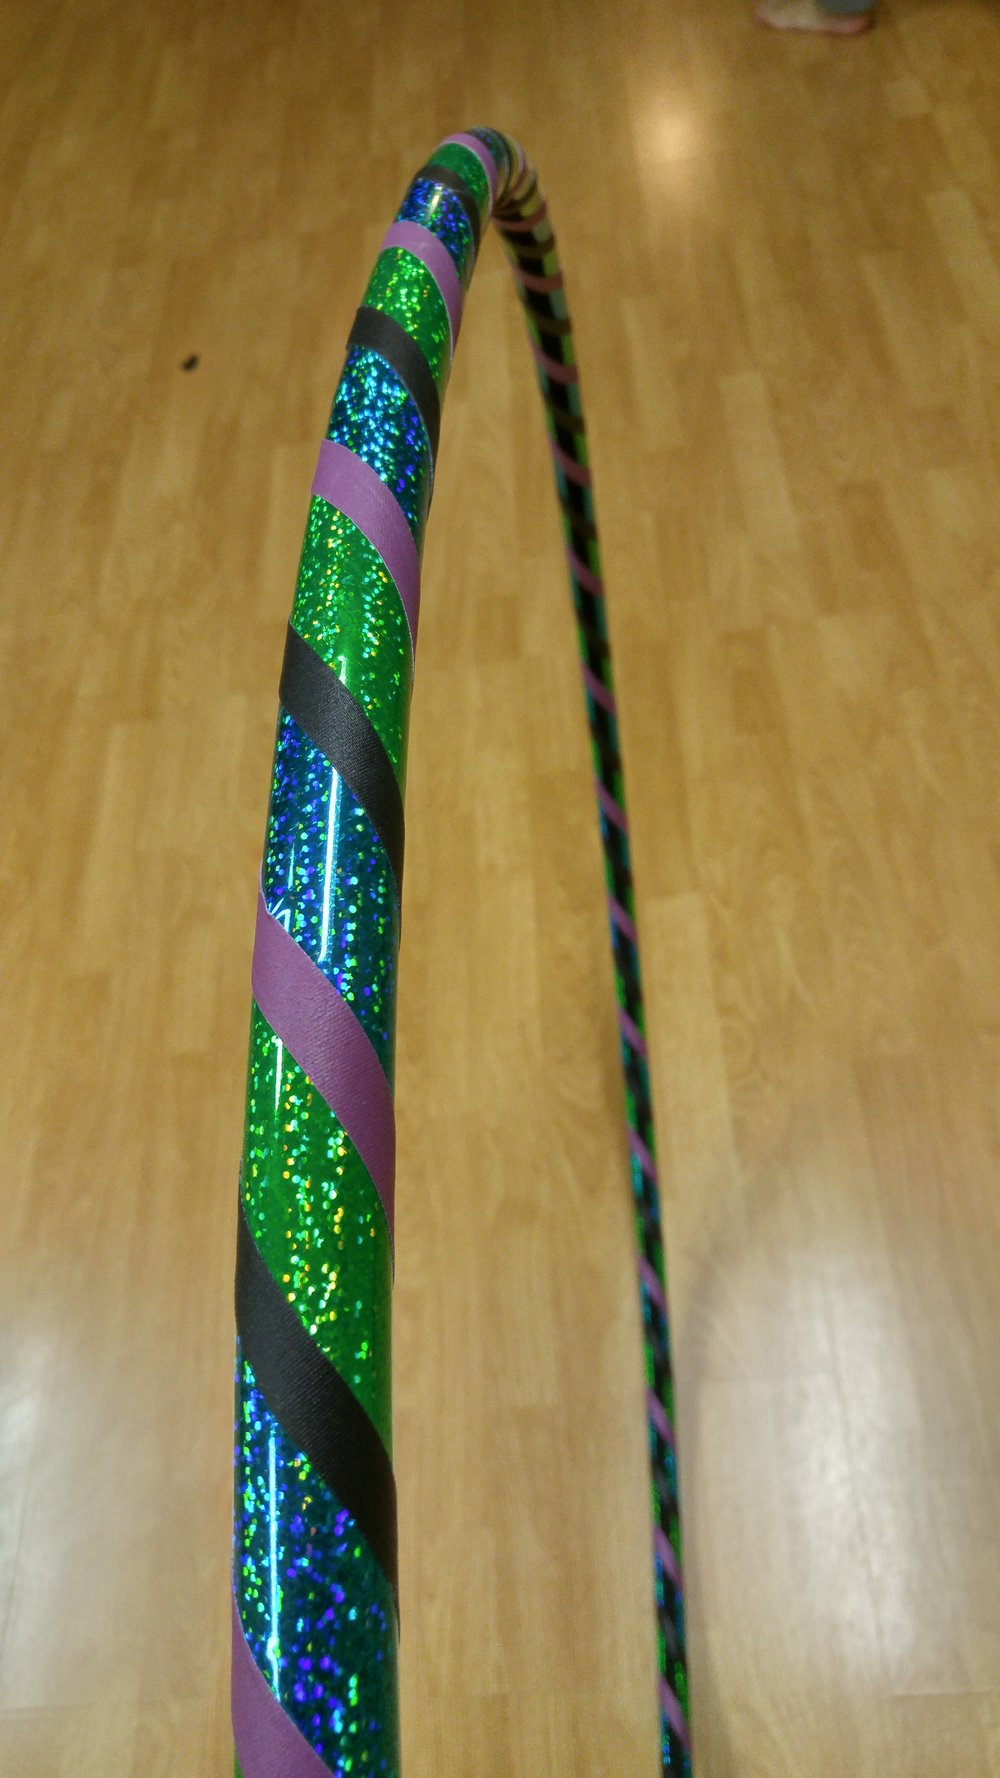 Teal & Green Sparkle w/ black & purple grip tape